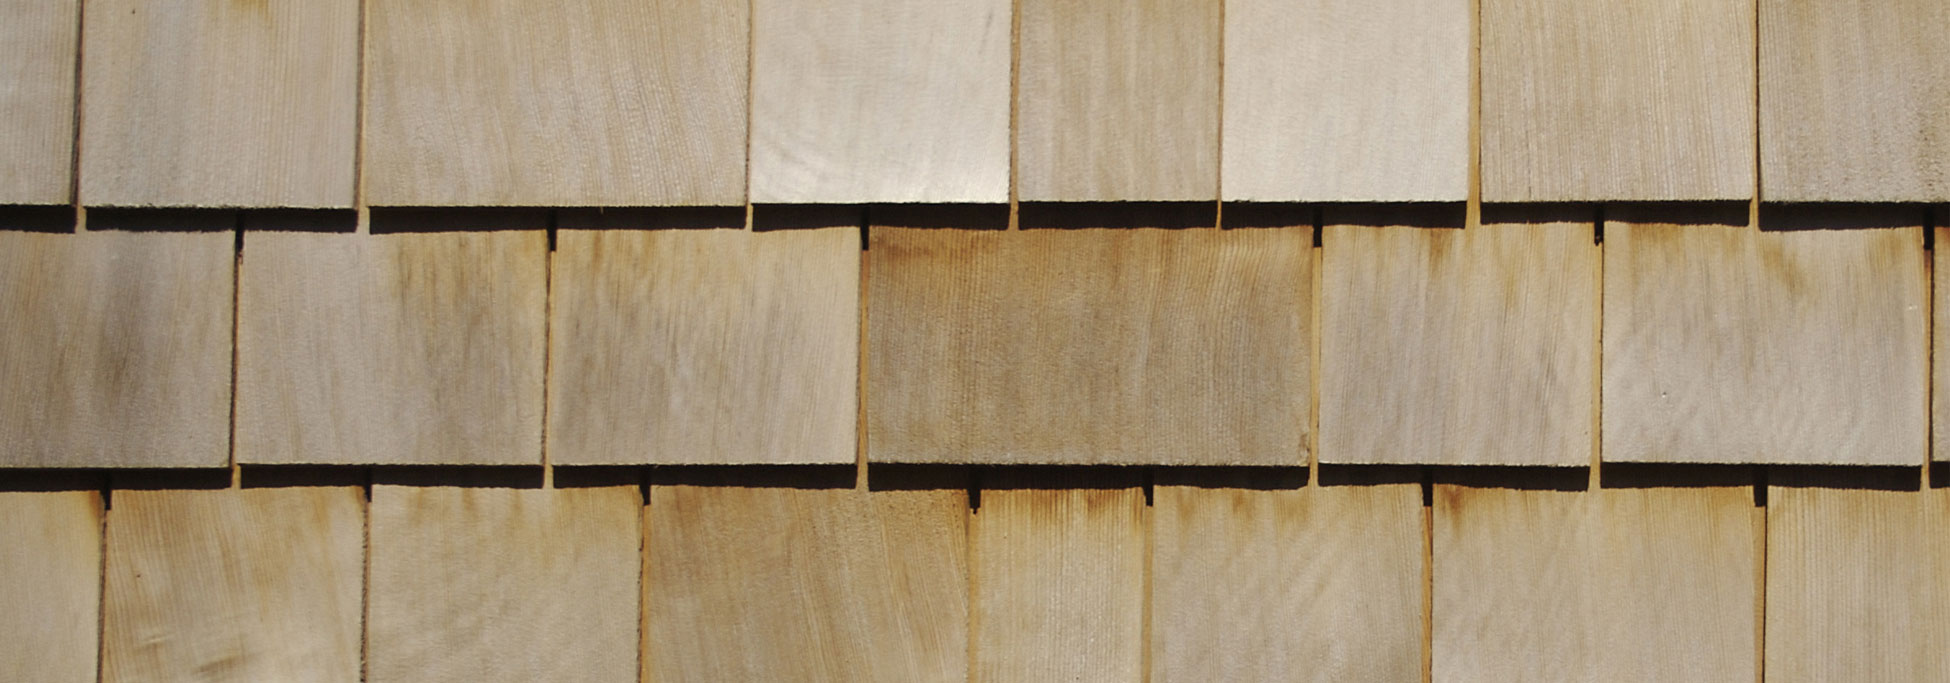 How to Perform Wooden Siding Repair